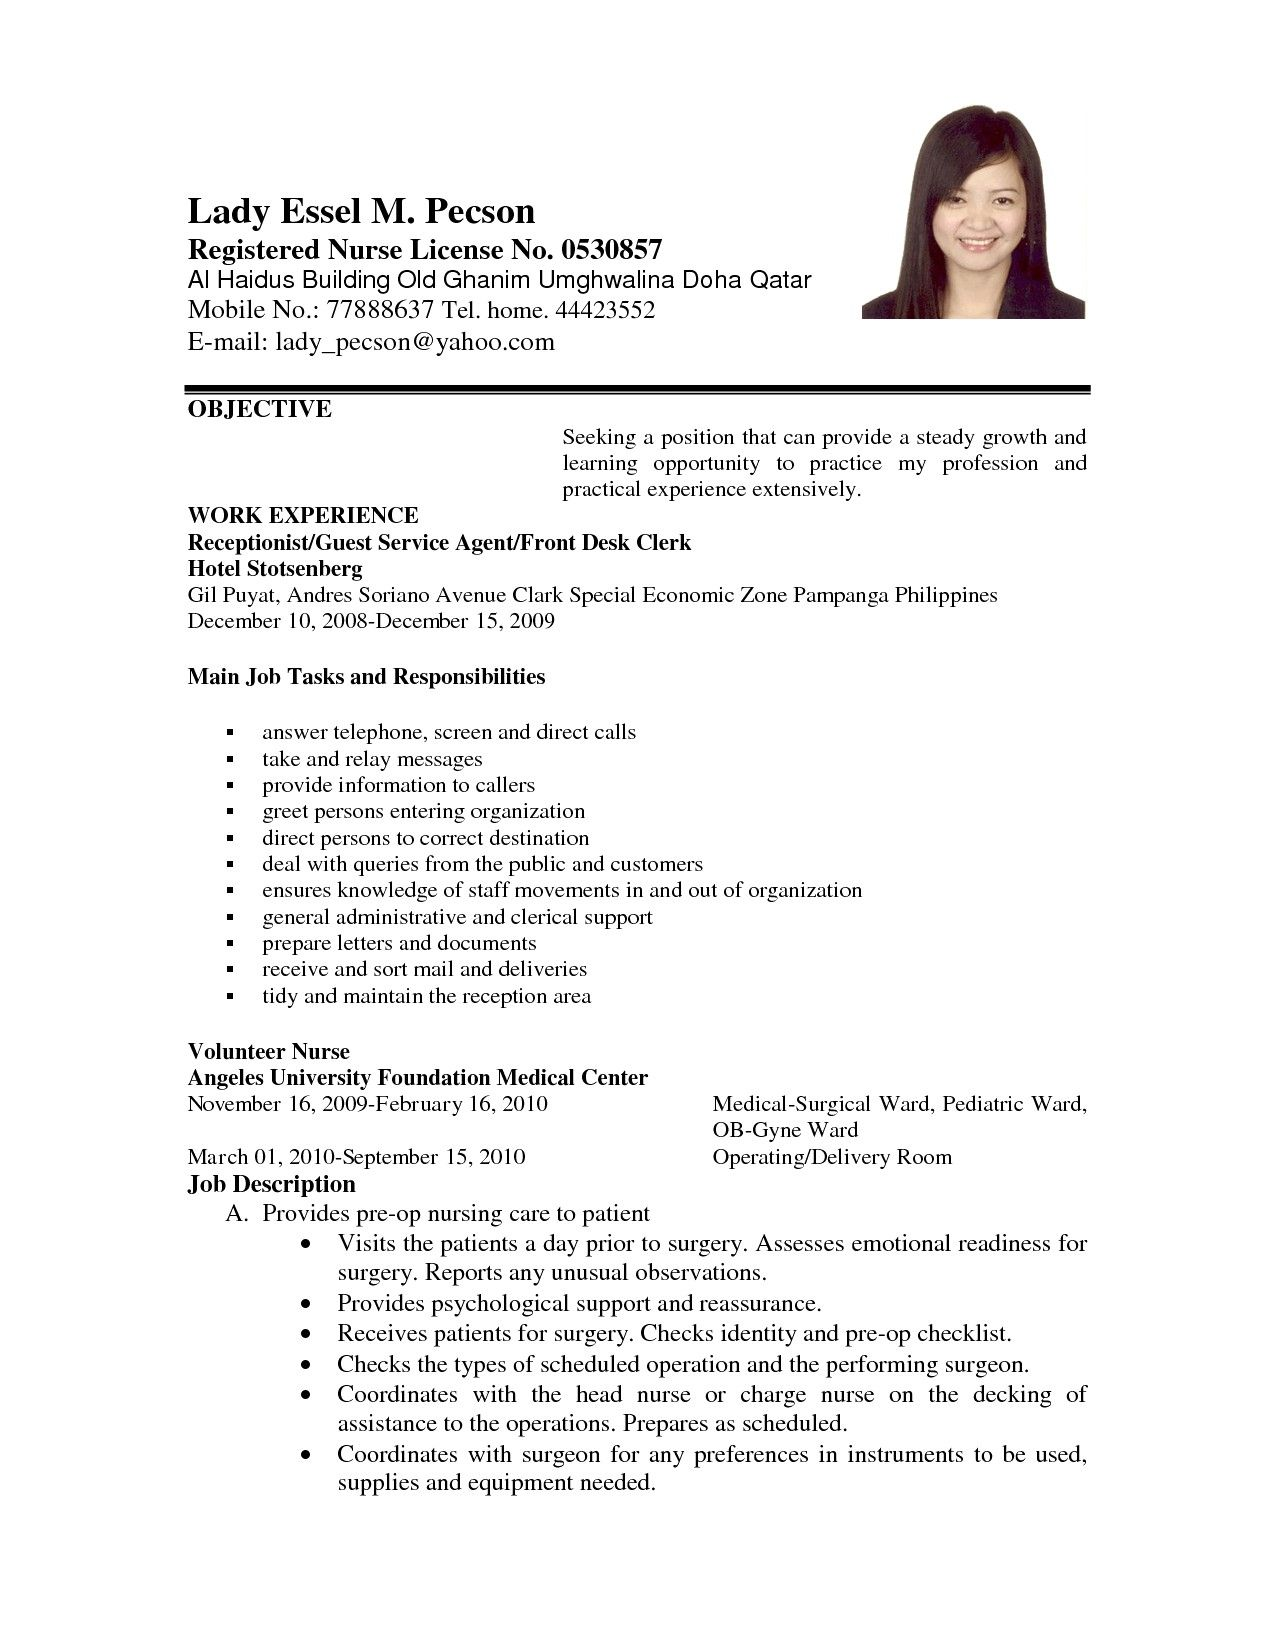 career objective resume examples awesome example applying for job of objectives cover Resume Good Career Objective For Resume